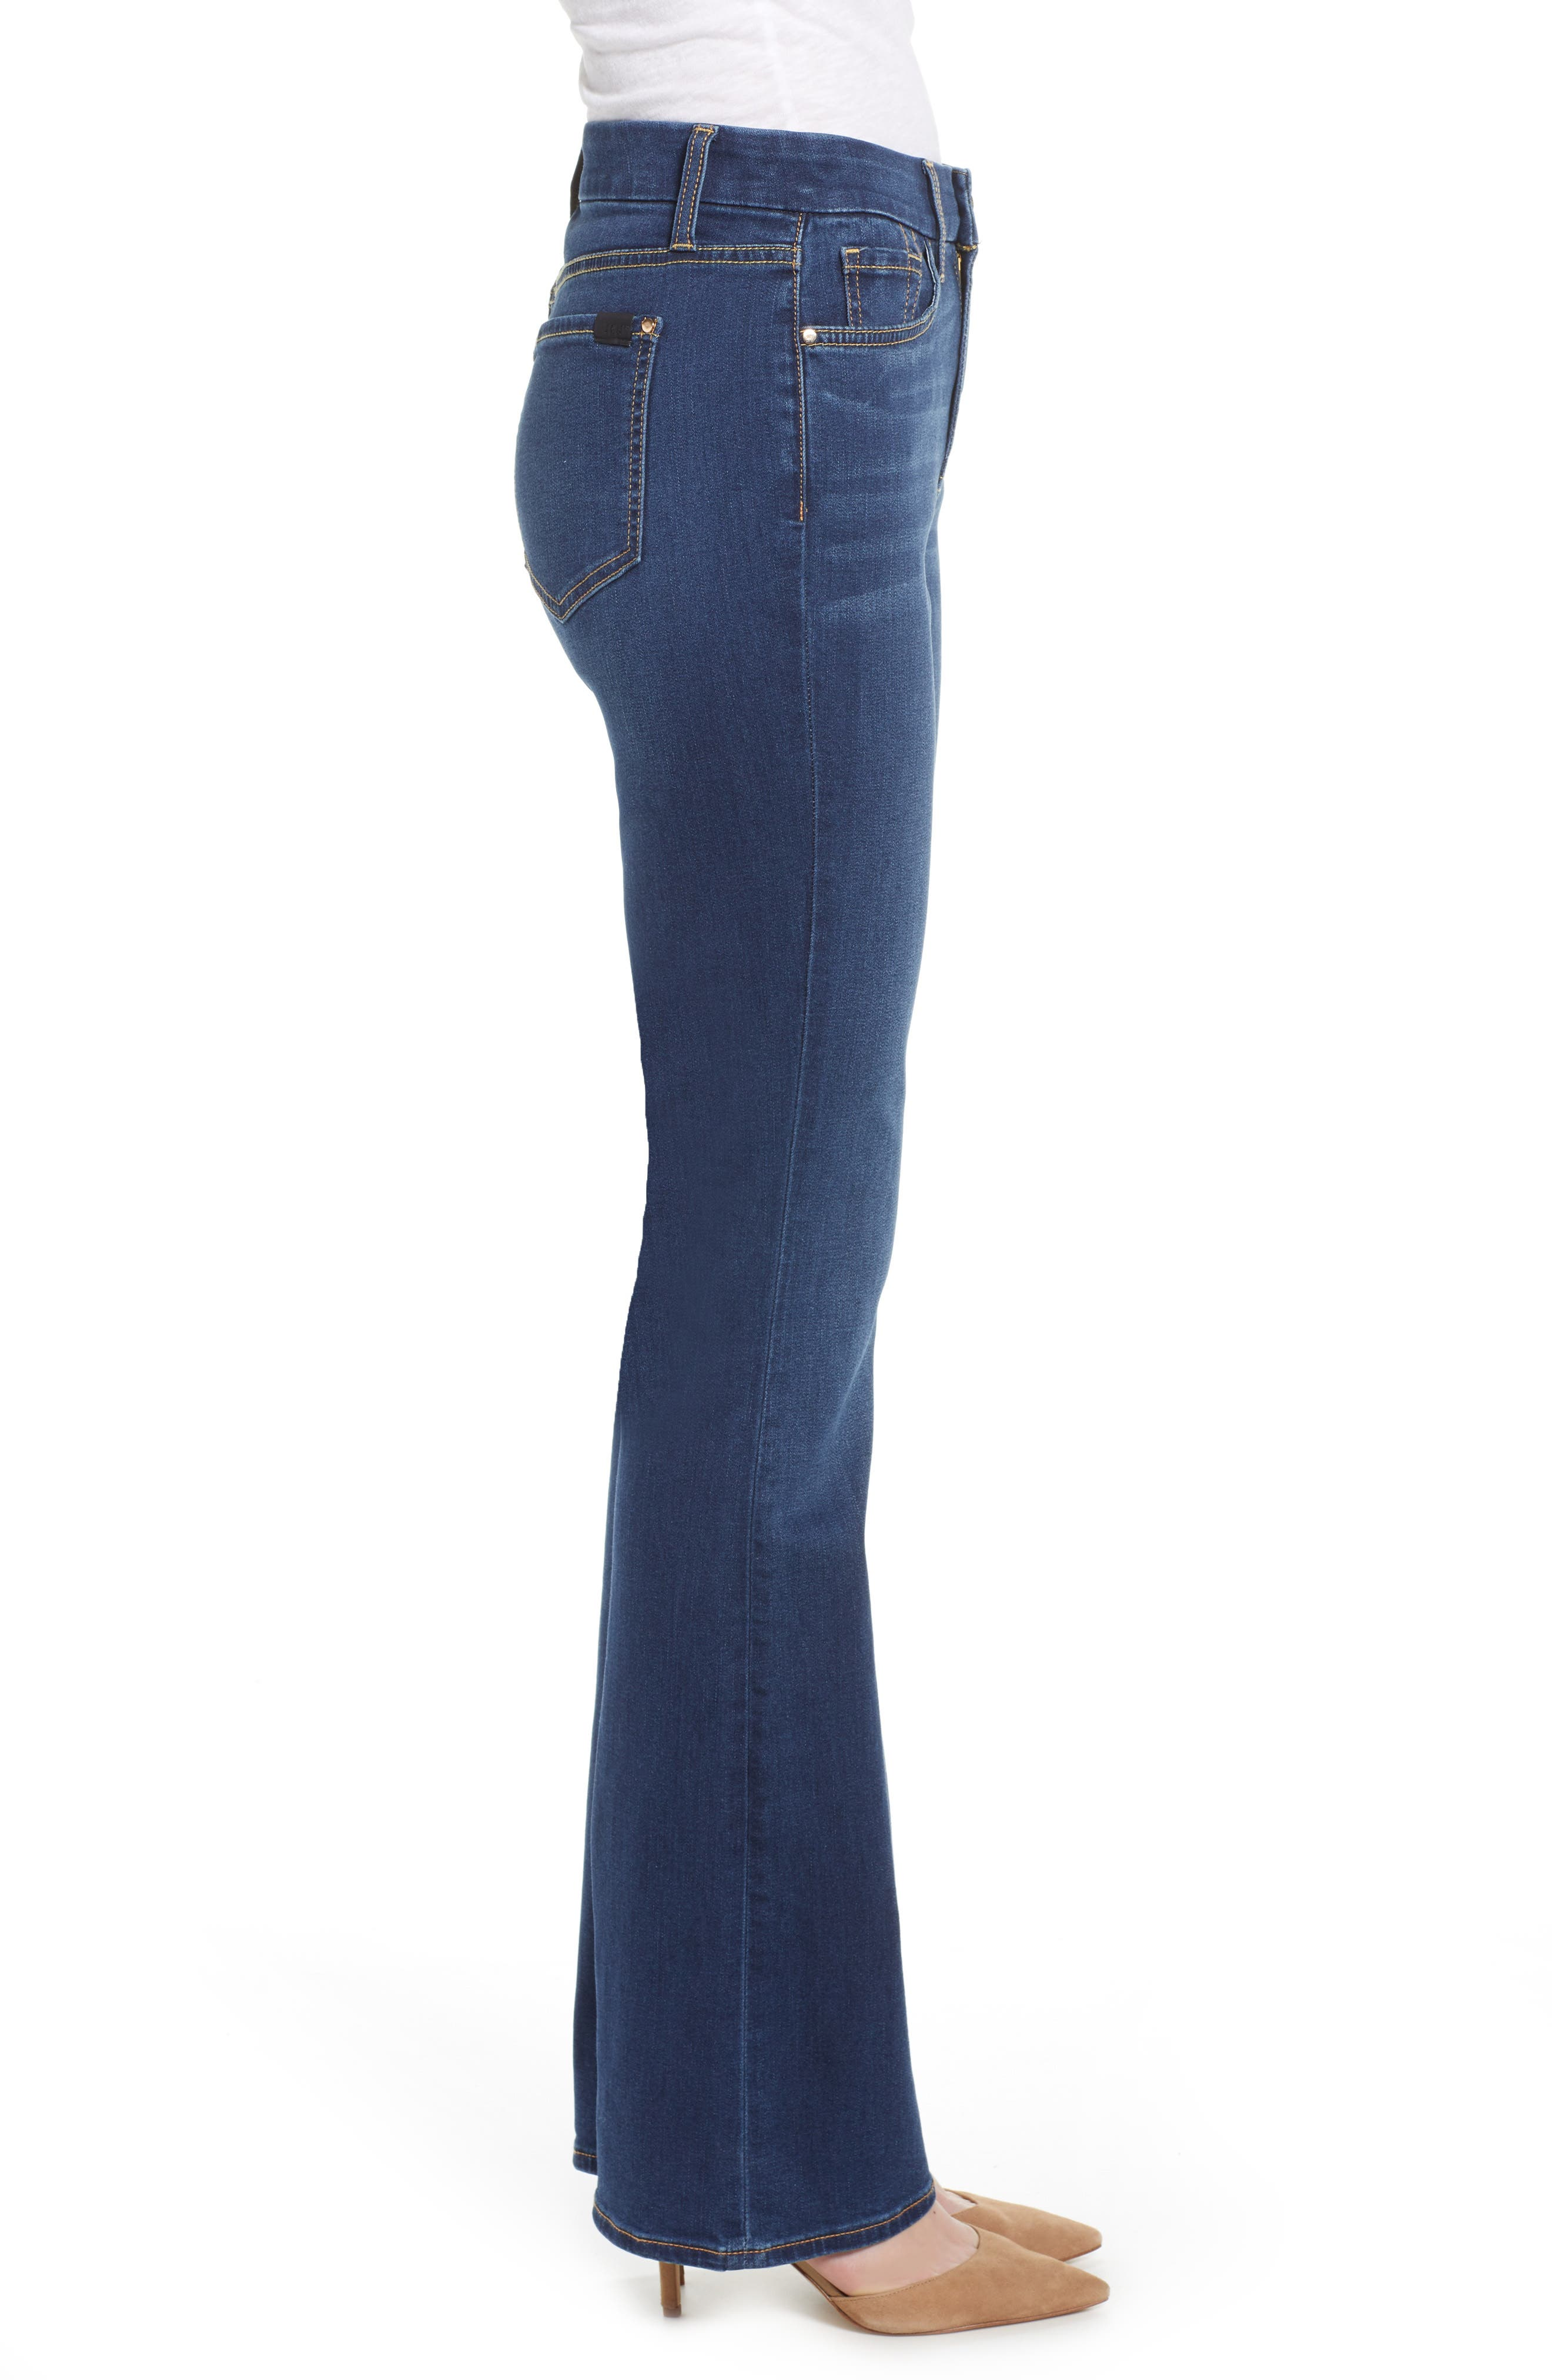 JEN7 BY 7 FOR ALL MANKIND, Slim Bootcut Jeans, Alternate thumbnail 4, color, CLASSIC MEDIUM BLUE